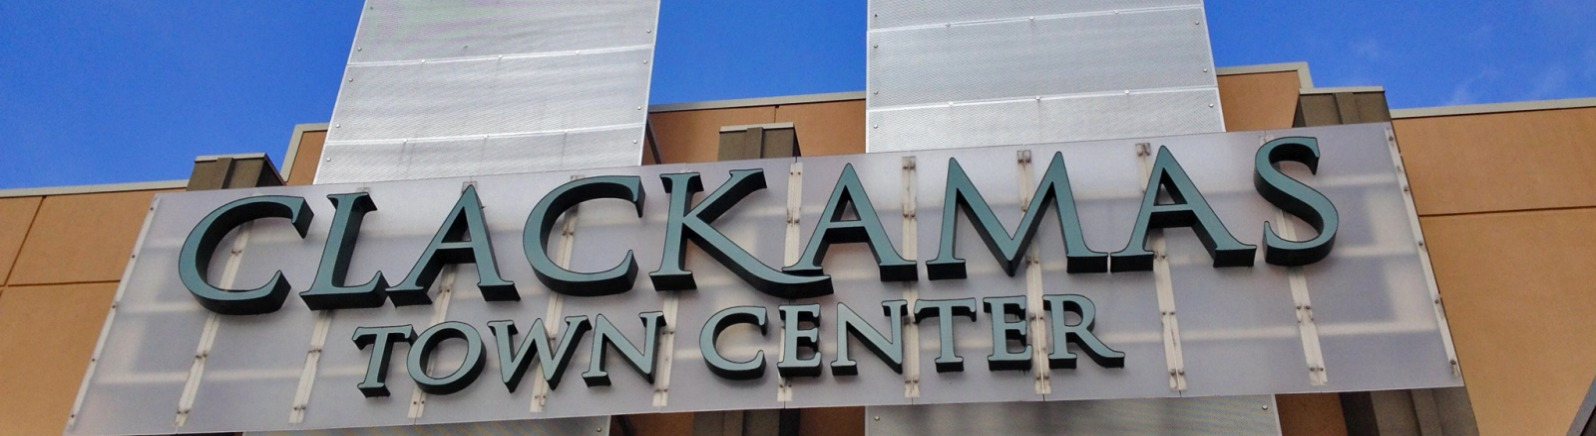 Clackamas Town Center sign tax free shopping Oregon's Mt. Hood Territory